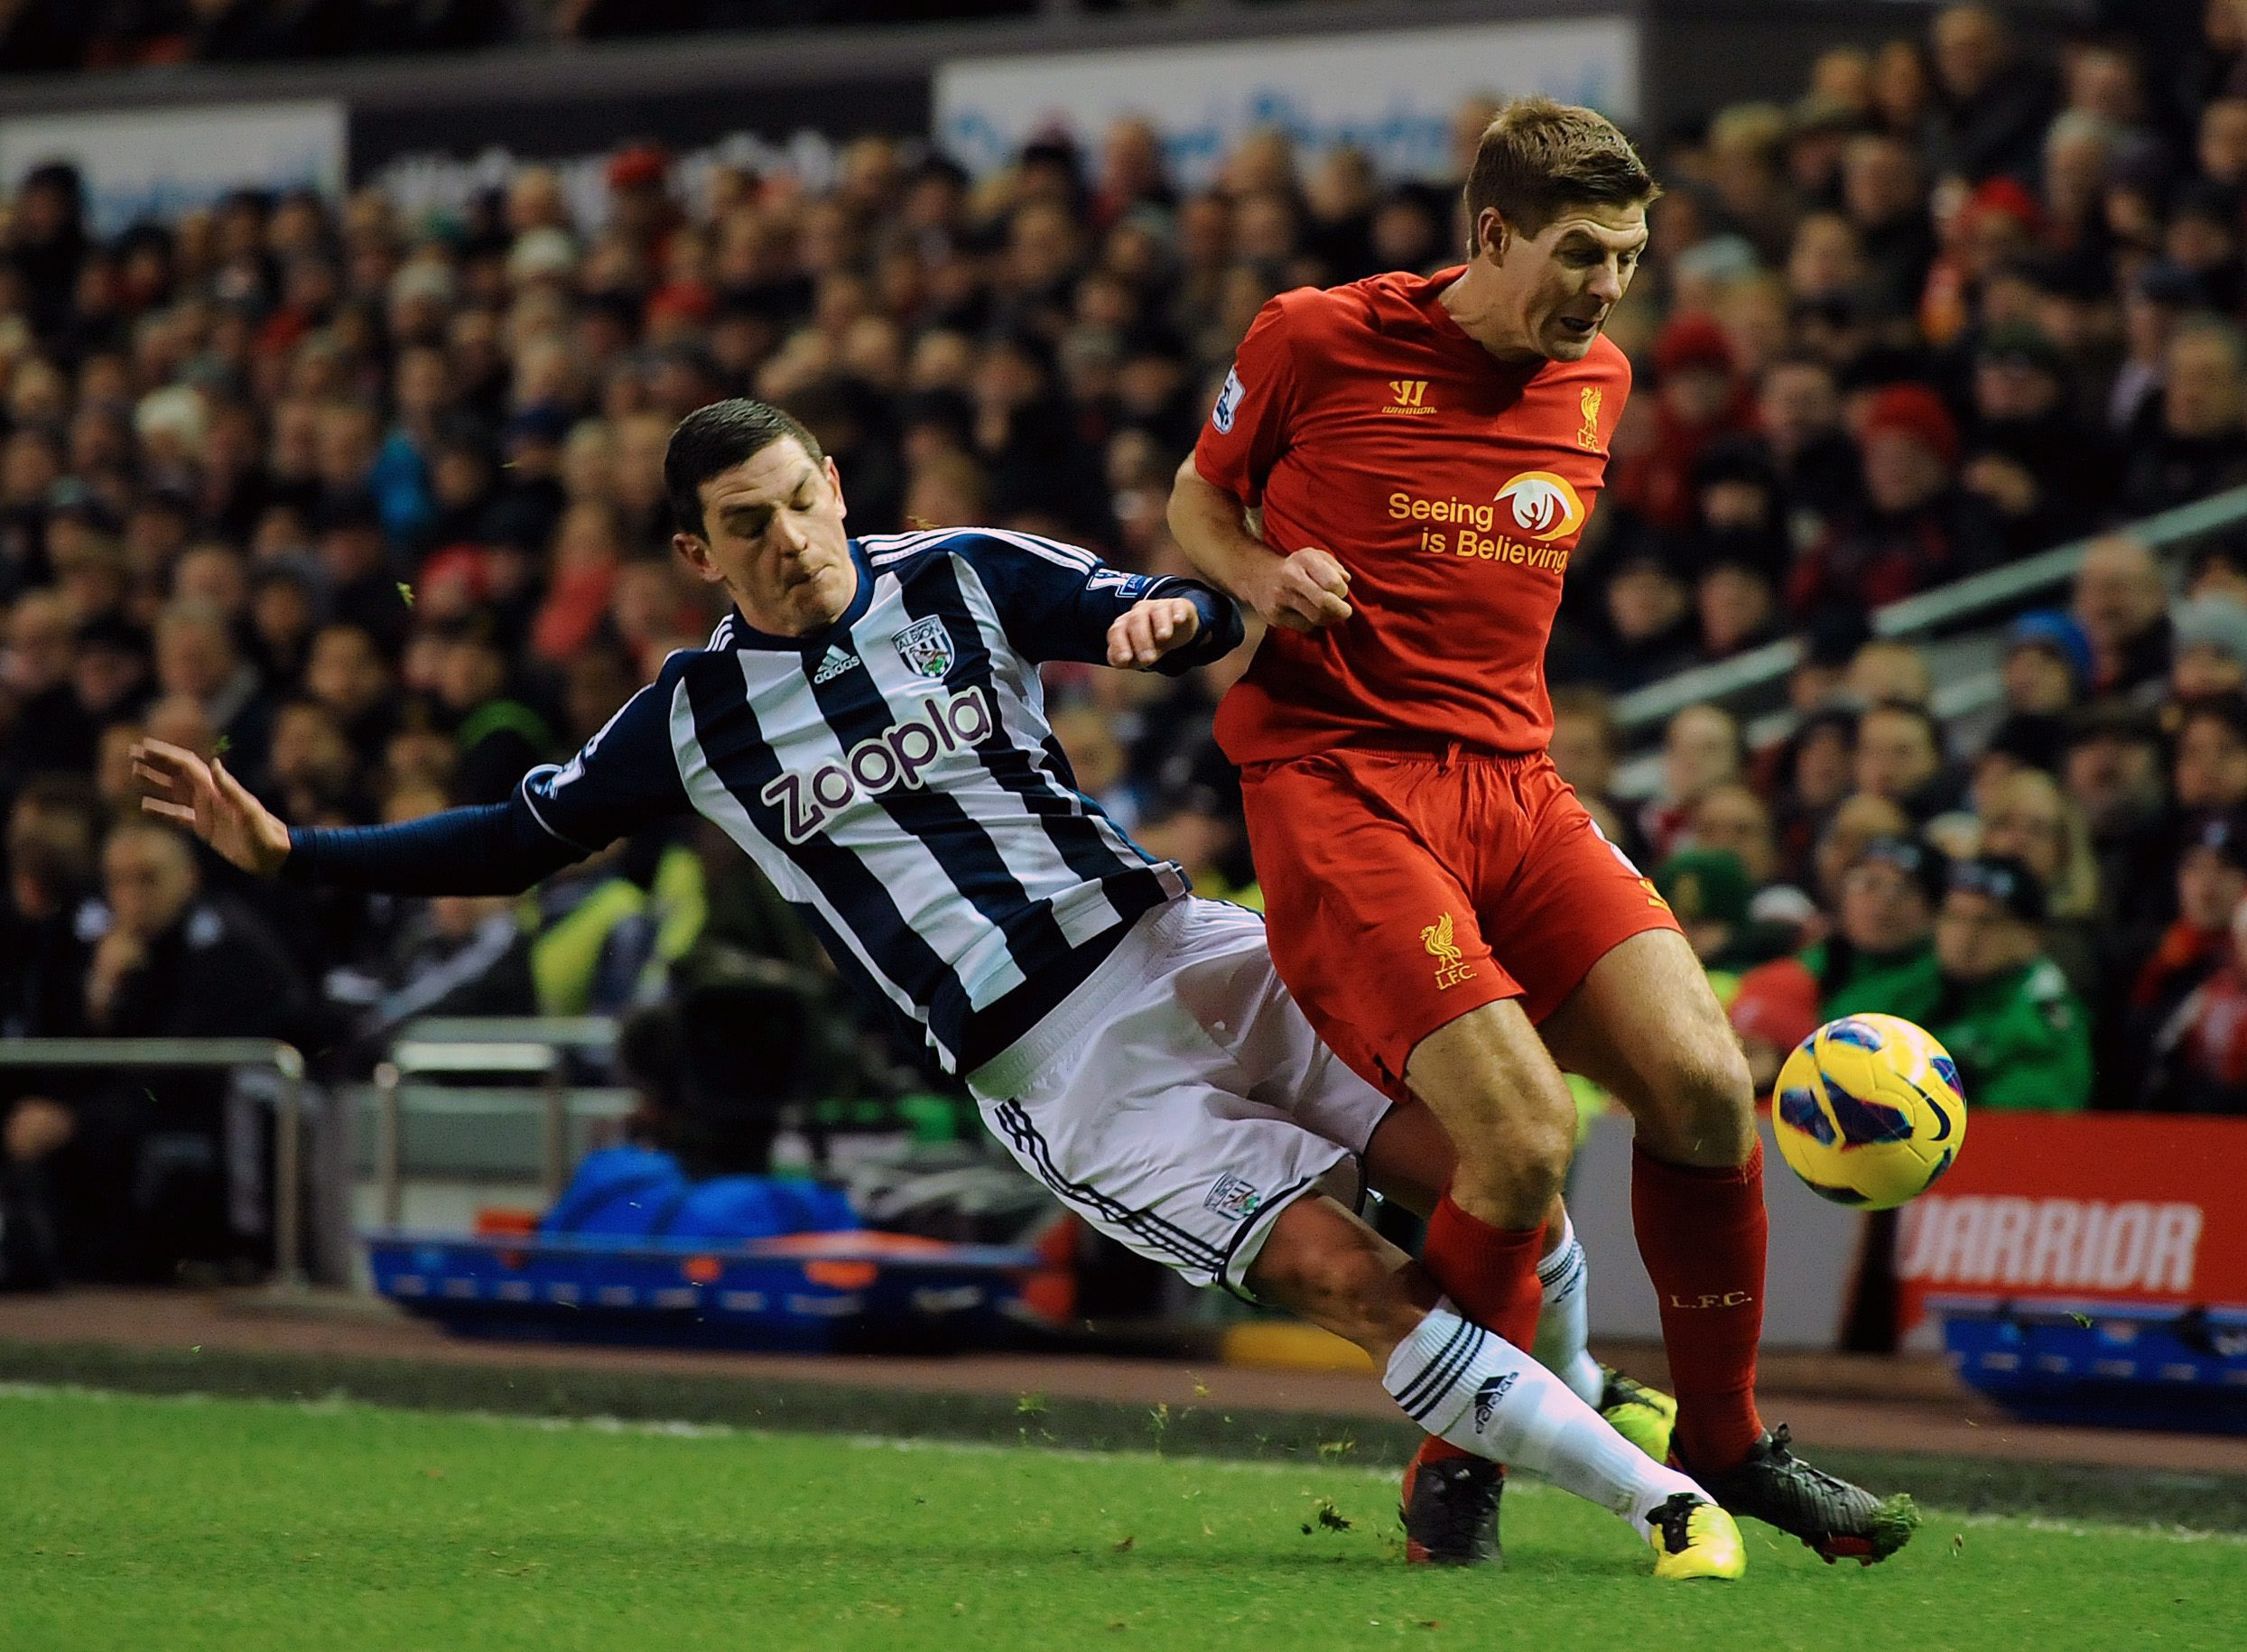 west brom vs liverpool - photo #21